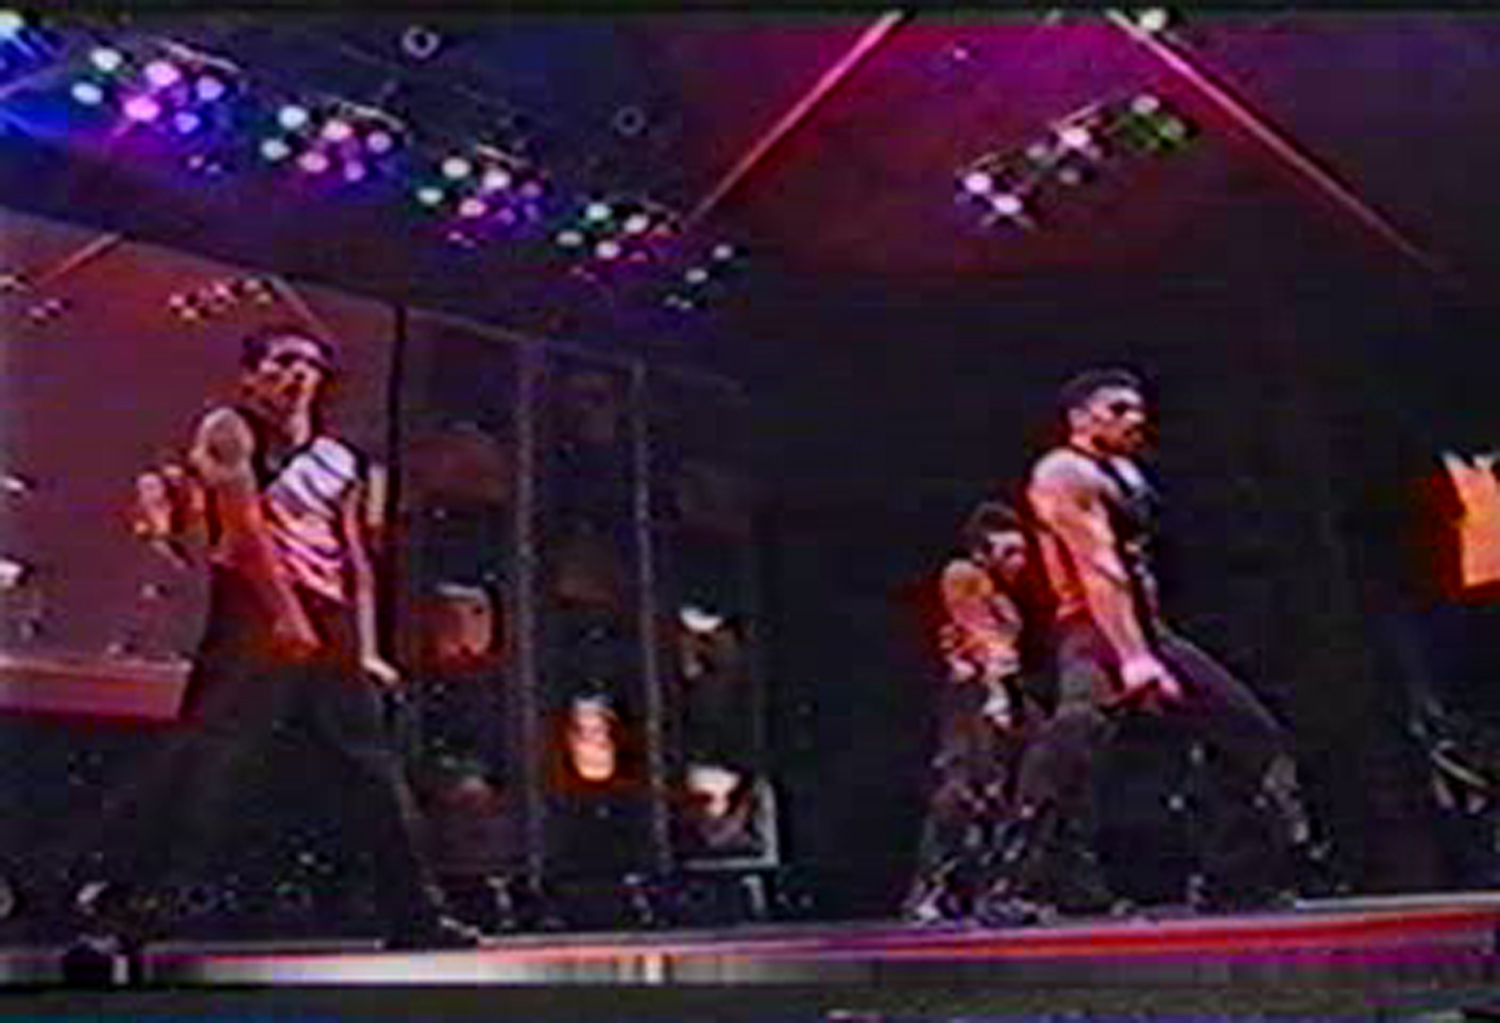 2003: PMT Dance Co. at Trump Taj